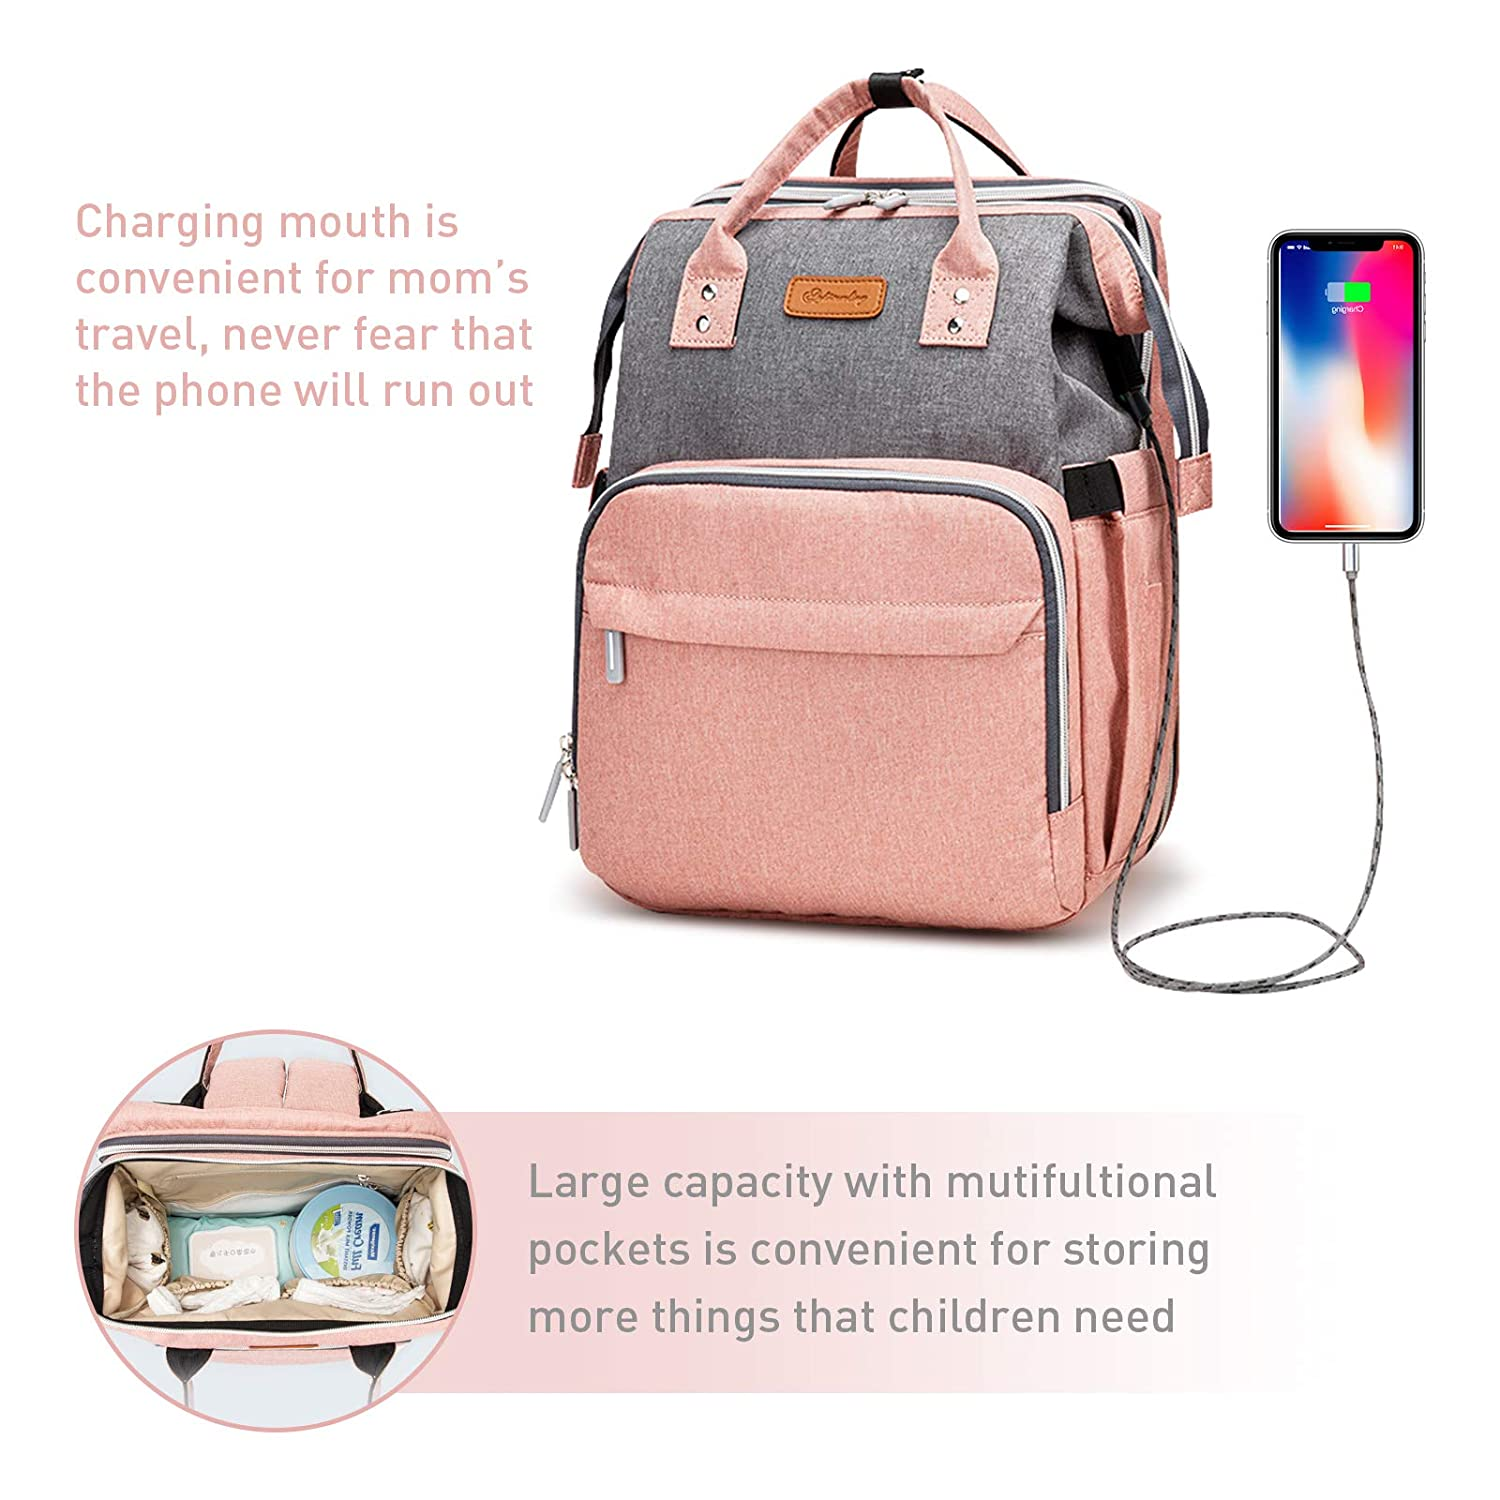 Baby Diaper Bag Backpack with Bassinet Changing Station, Diaper Backpack with USB Charging Port, 3 in 1 Baby Bag, Large Capacity, Multi-Function, Waterproof Travel Bag for Mom and Dad(Gray-Pink)